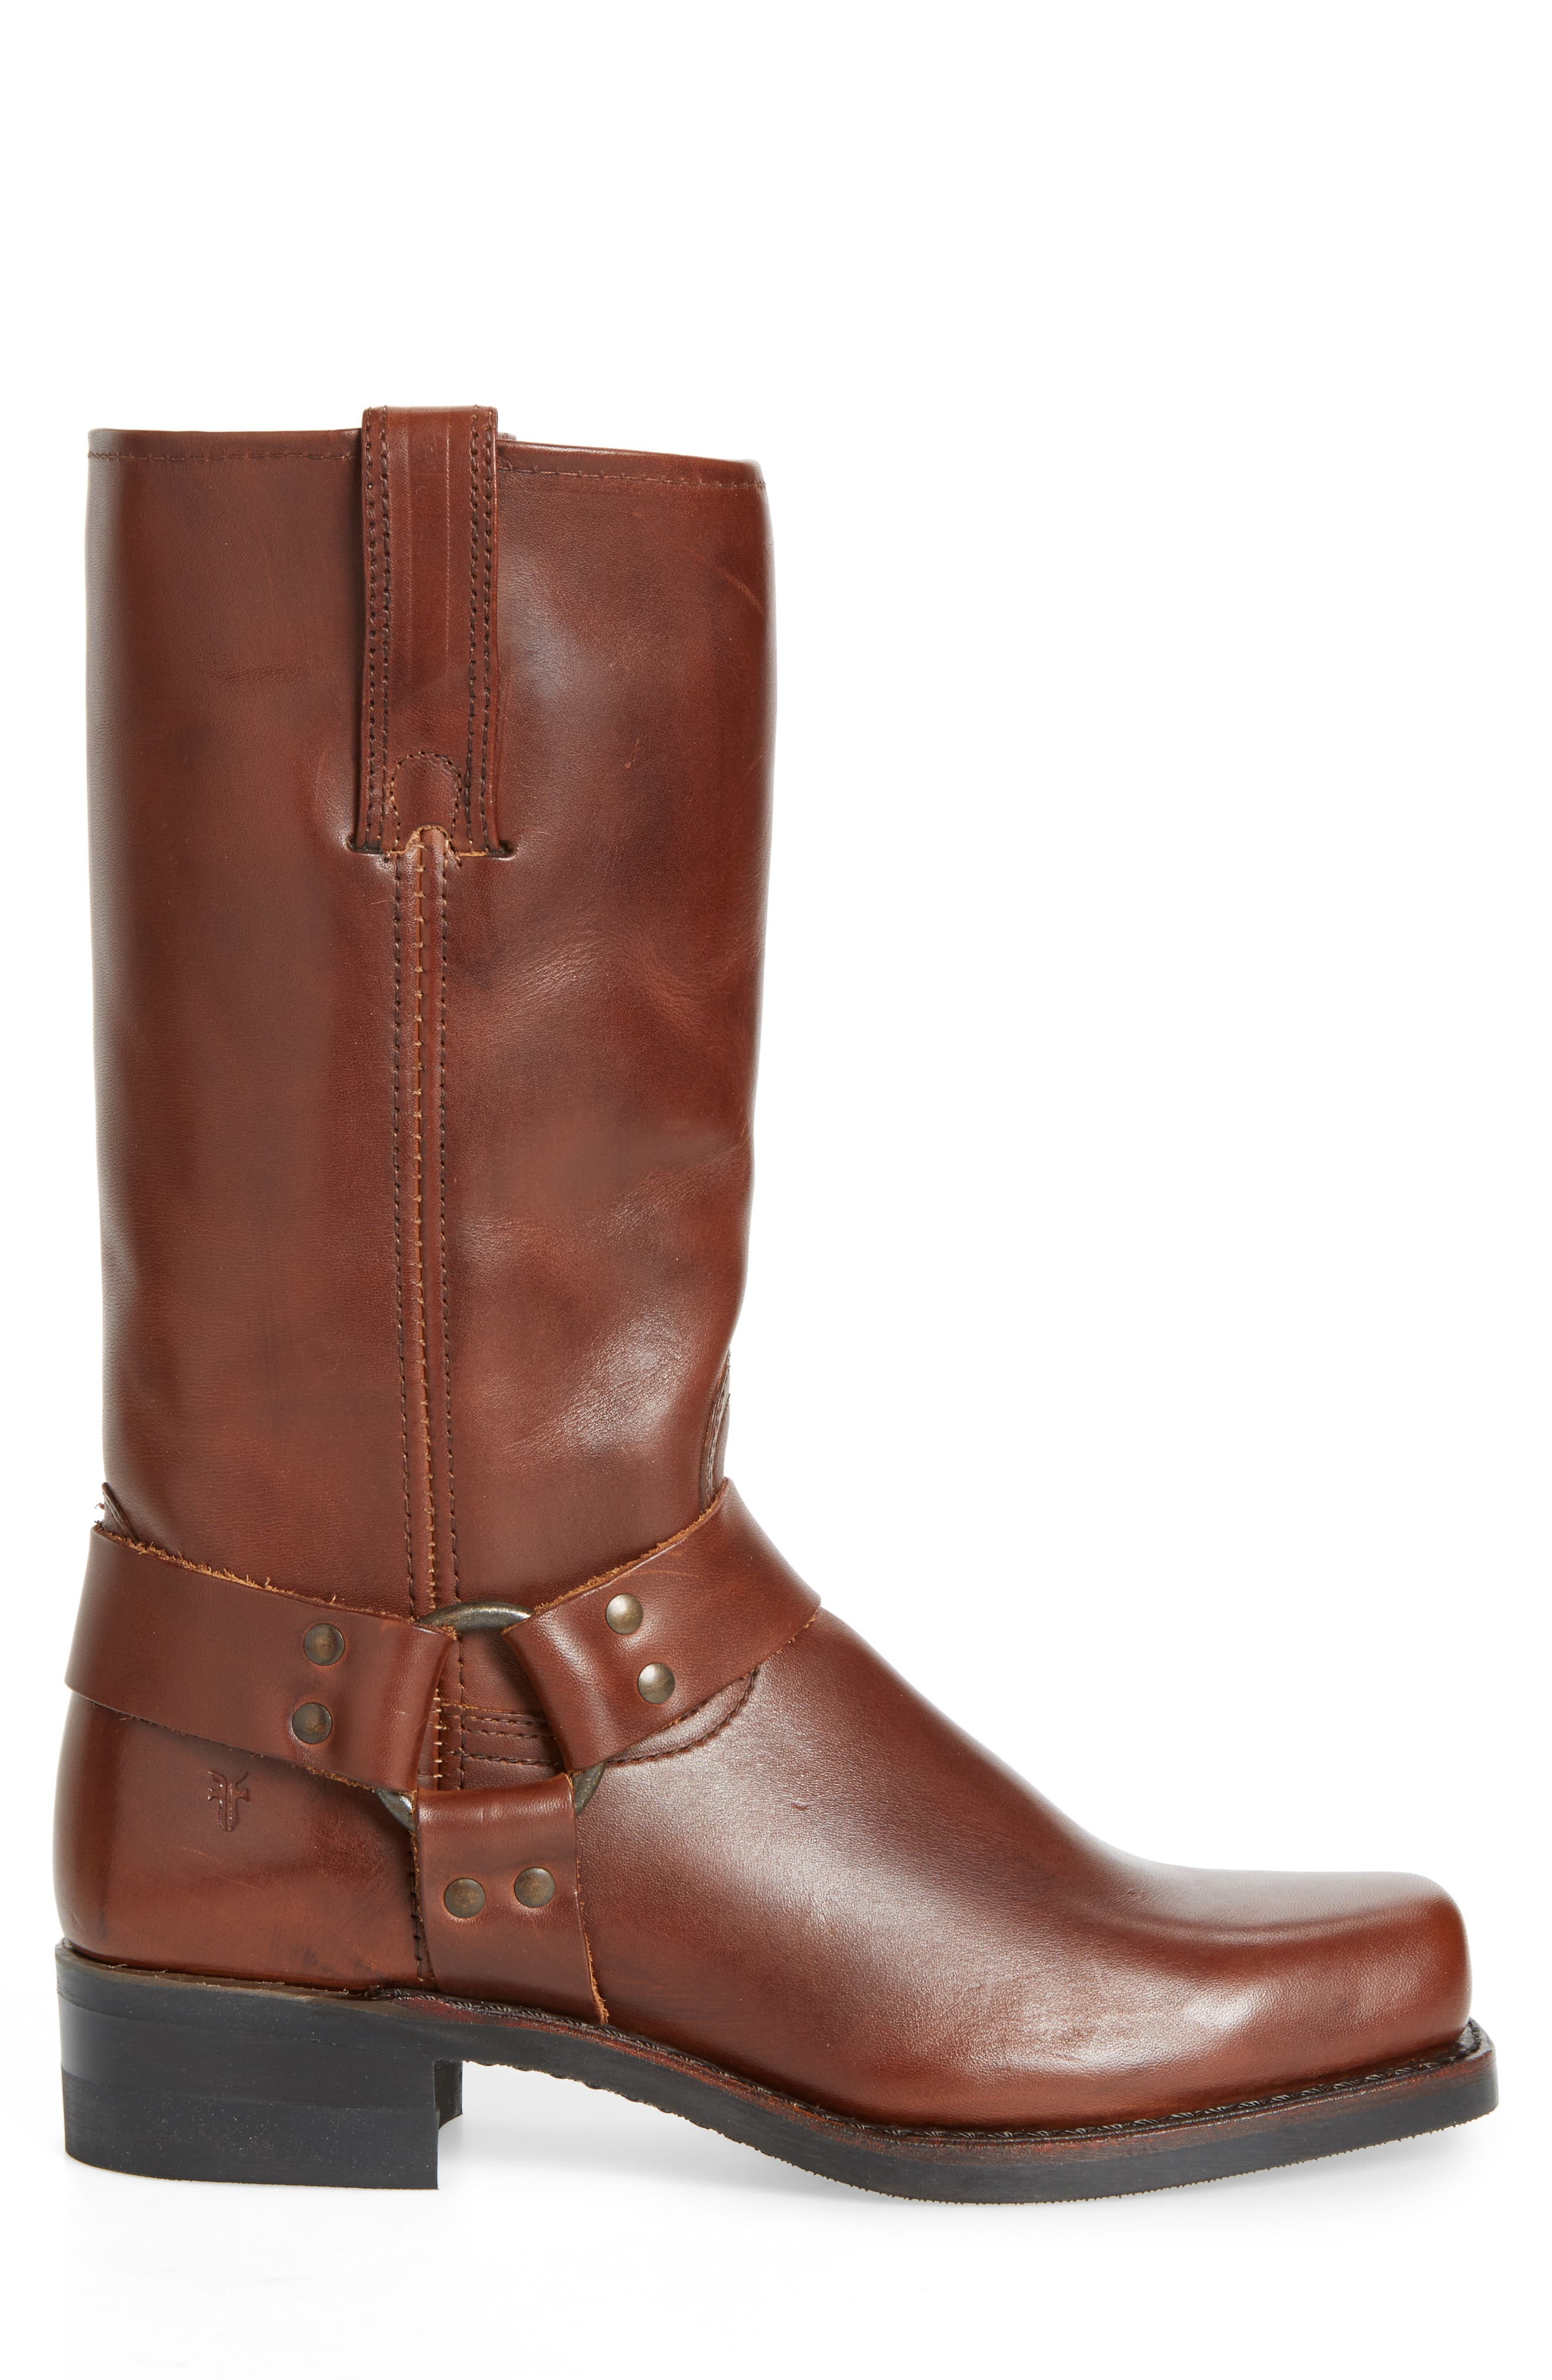 12R Harness Boot,                             Alternate thumbnail 3, color,                             218